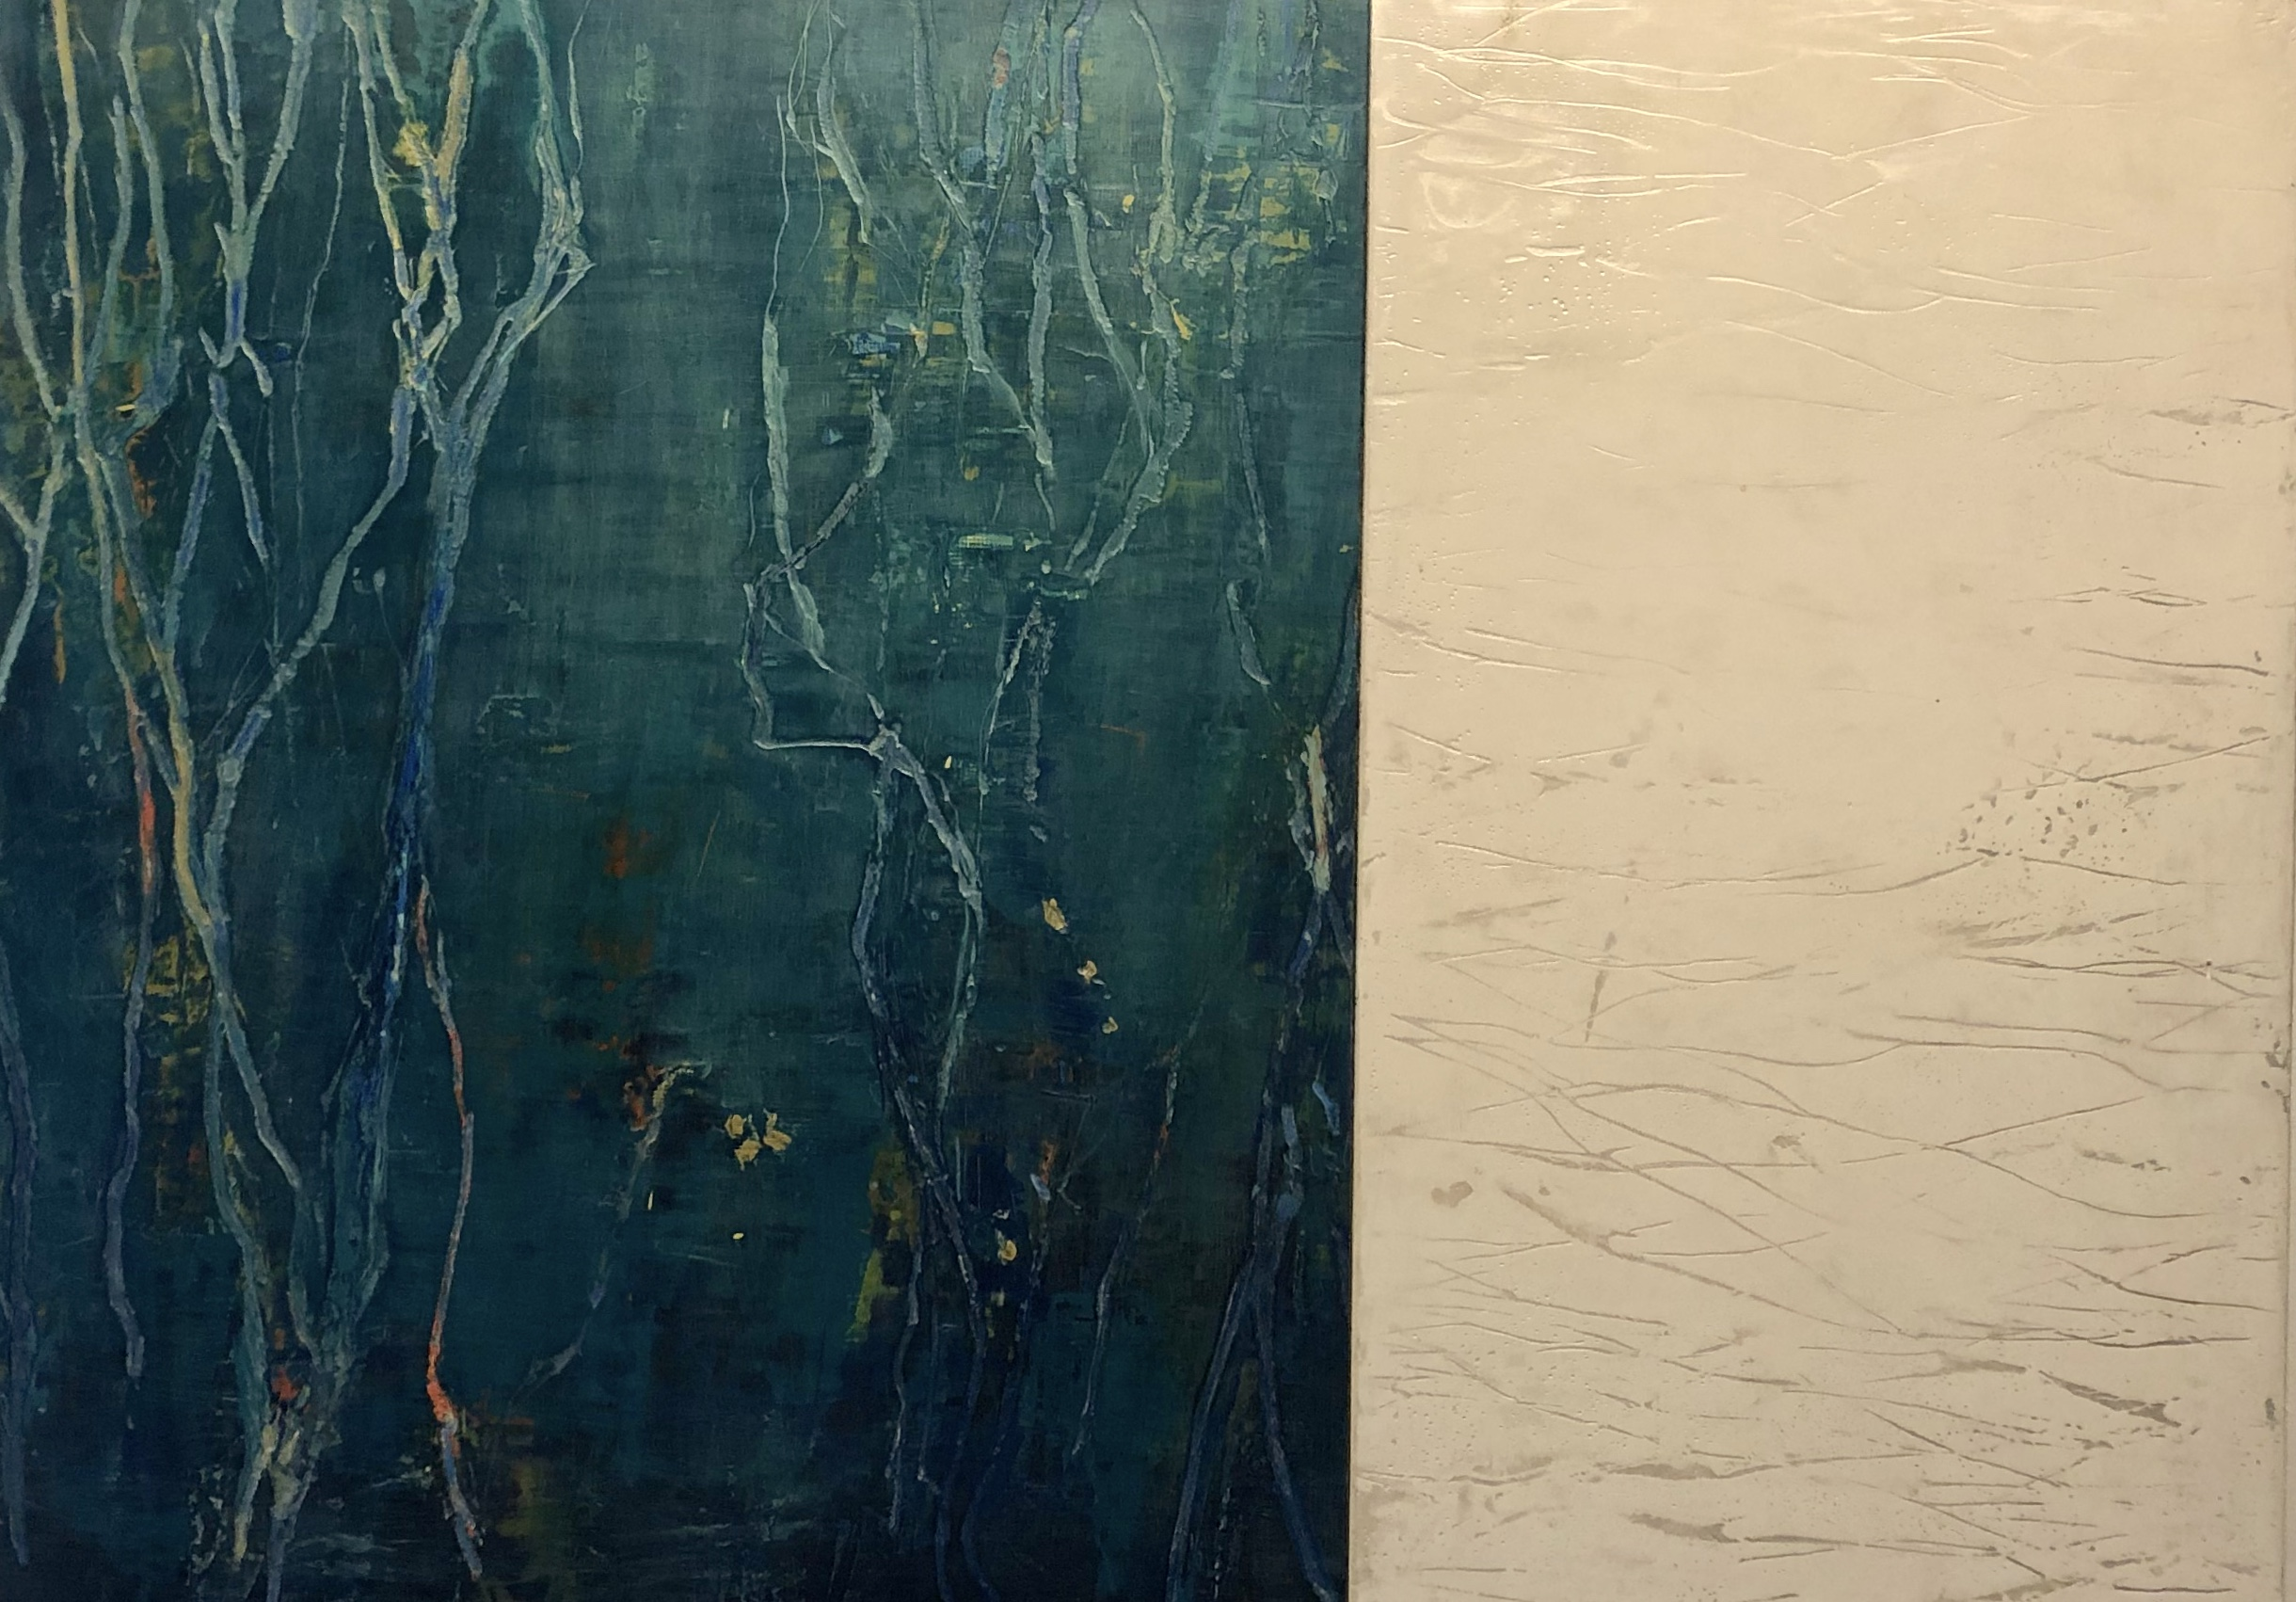 Diptych #2